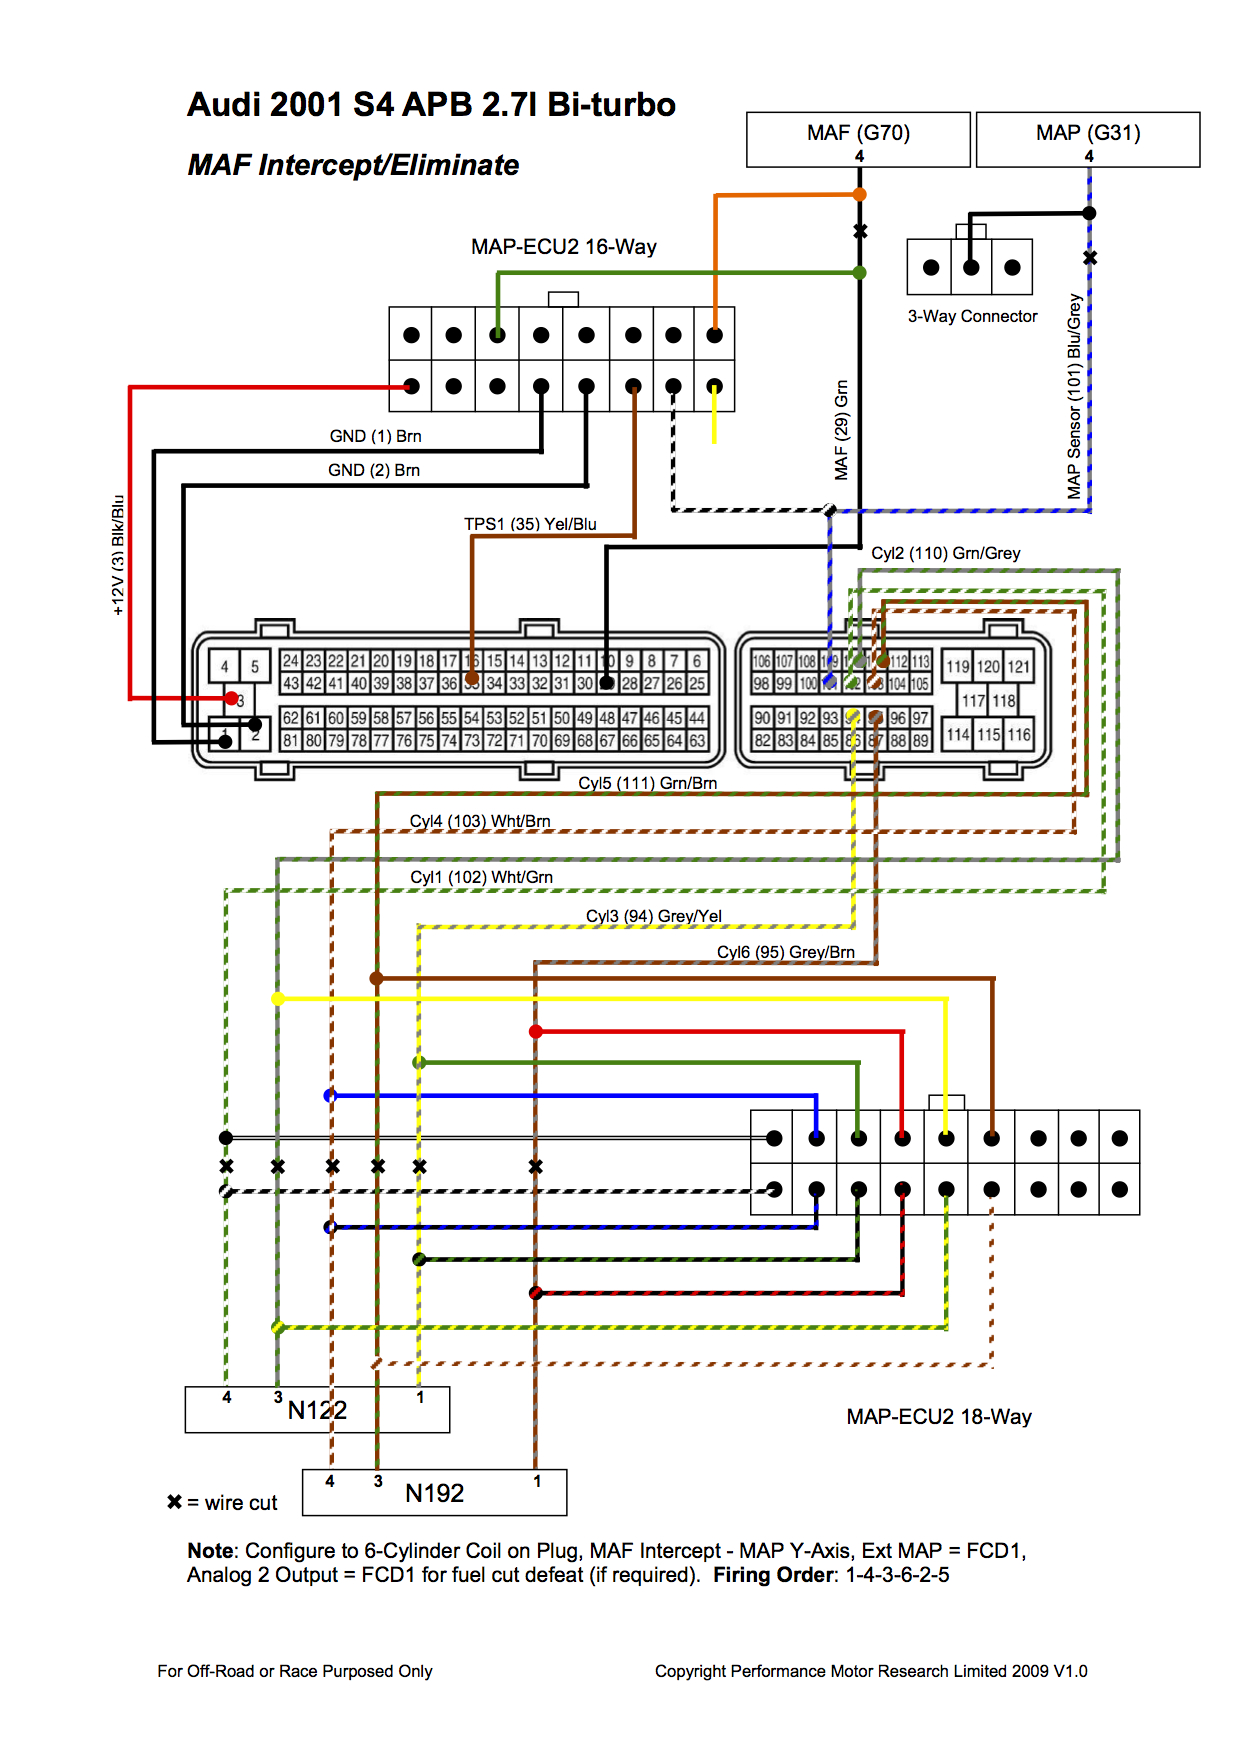 [FPWZ_2684]  MAPECU Wiring Diagrams Audi, BMW, Ford, Honda, Lexus, Nissan, Toyota | Lexus Is200 Wiring Diagrams Pdf |  | MAP-ECU